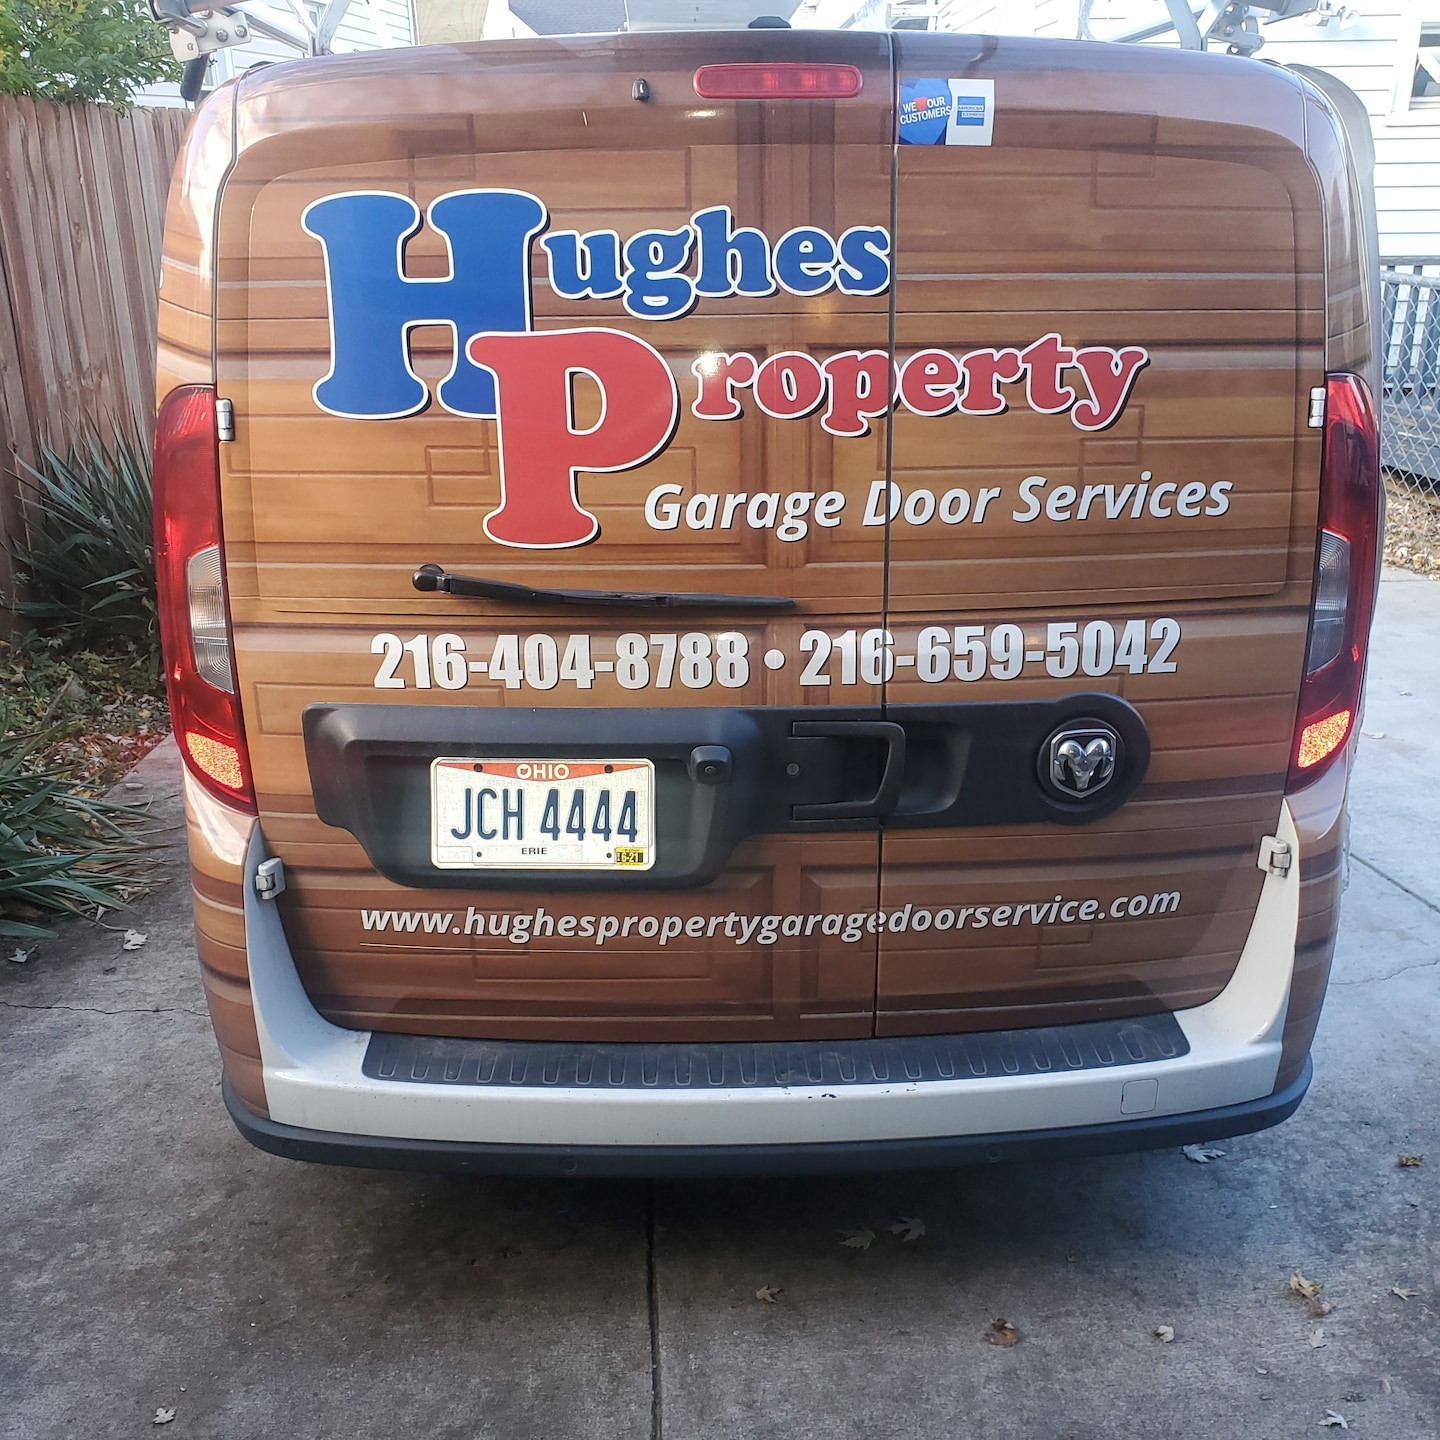 Hughes property garage door service